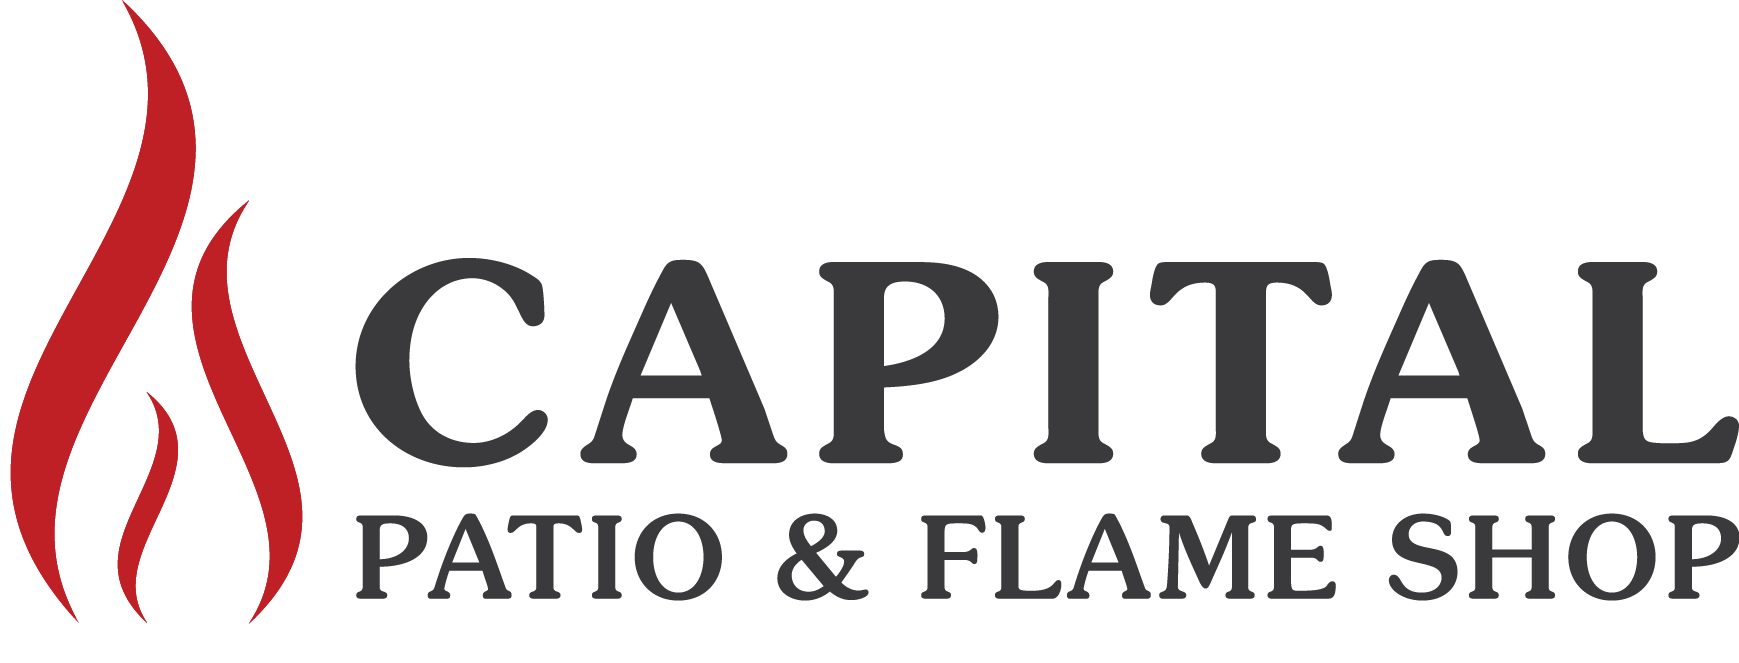 Capital Patio & Flame Shop